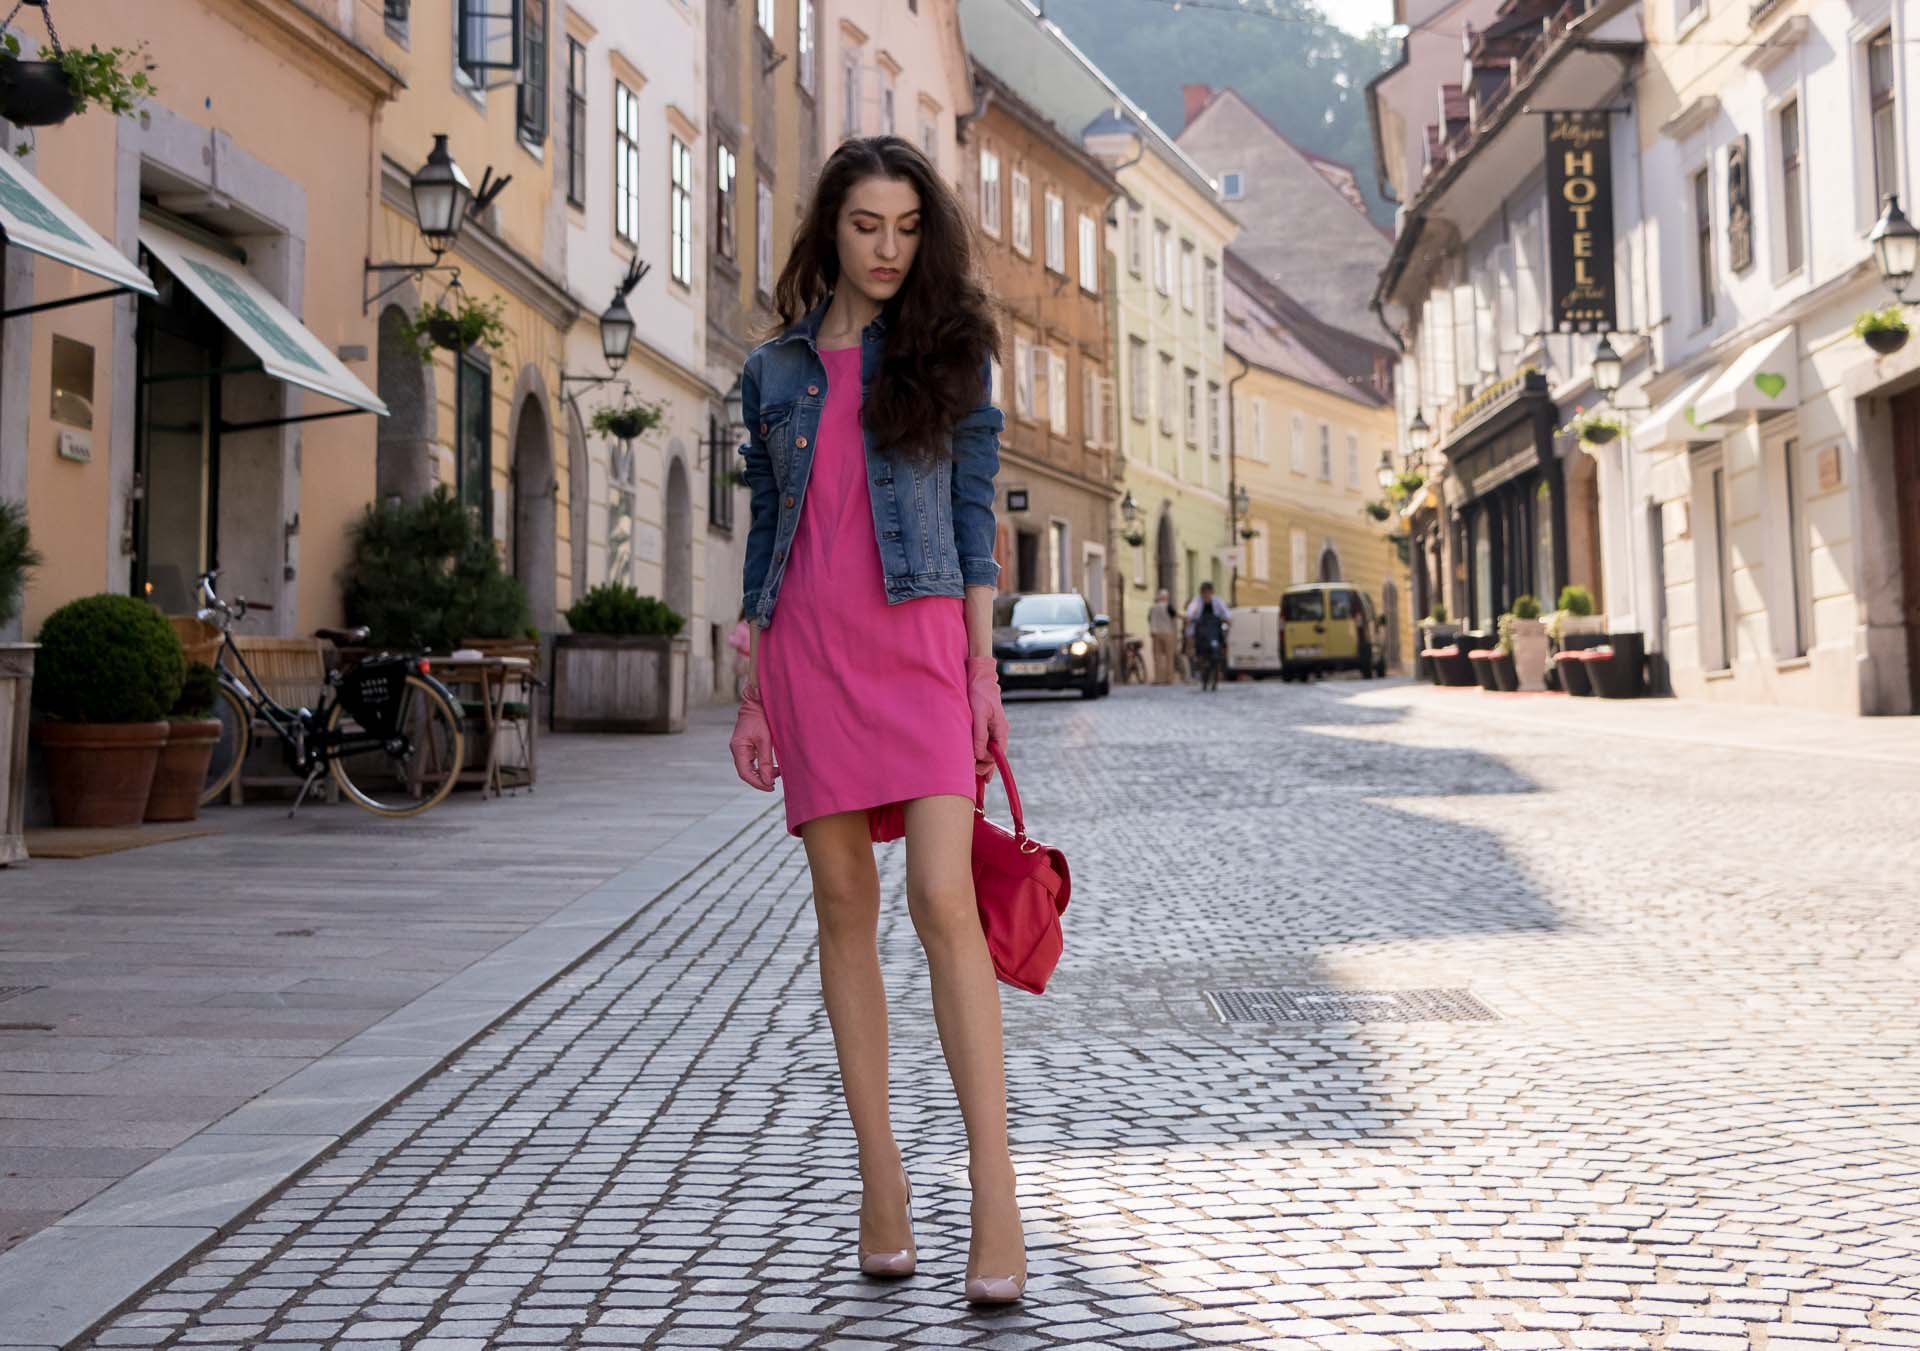 Veronika Lipar Fashion Blogger of Brunette from Wall Street dressed in H&M denim jacket, pink bodycon dress, blush Gianvito Rossi plexi pumps, pink Forzieri gloves, See by Chloé pink top handle bag, Adam Selman x Le Specs white cat eye Lolita sunglasses while standing on the street in Ljubljana